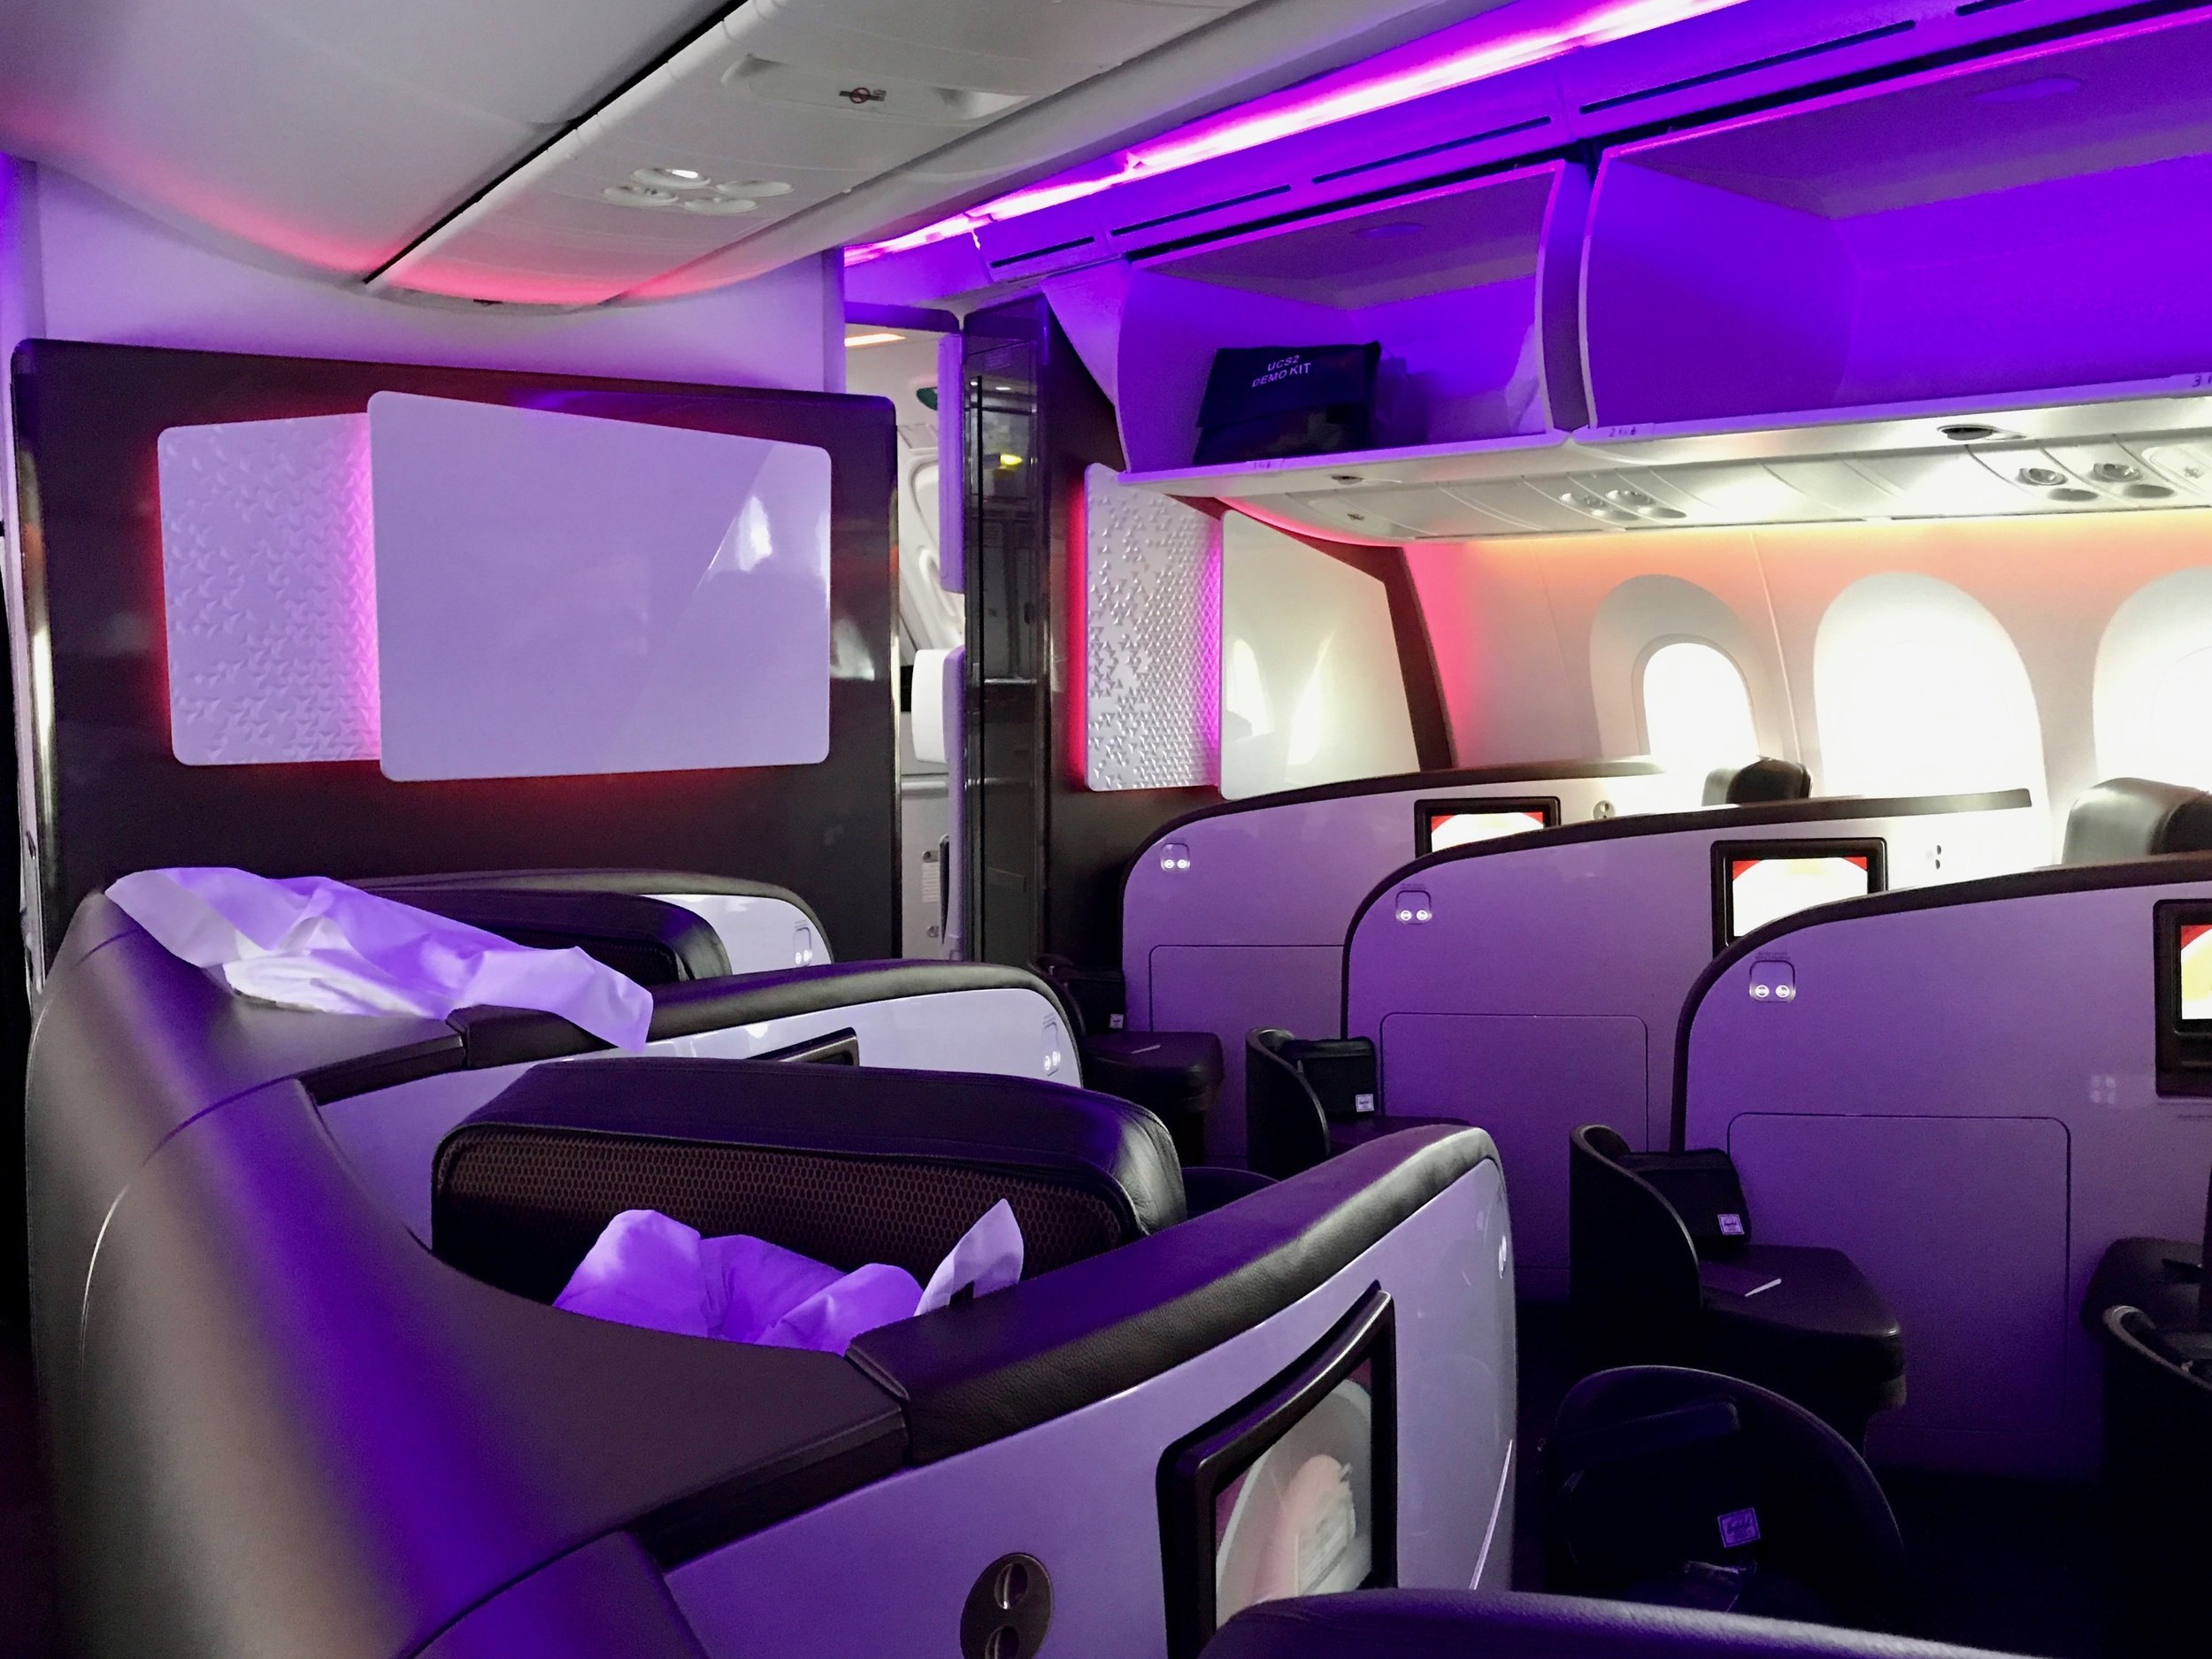 Review: Virgin Atlantic 787 Upper Class London To New York